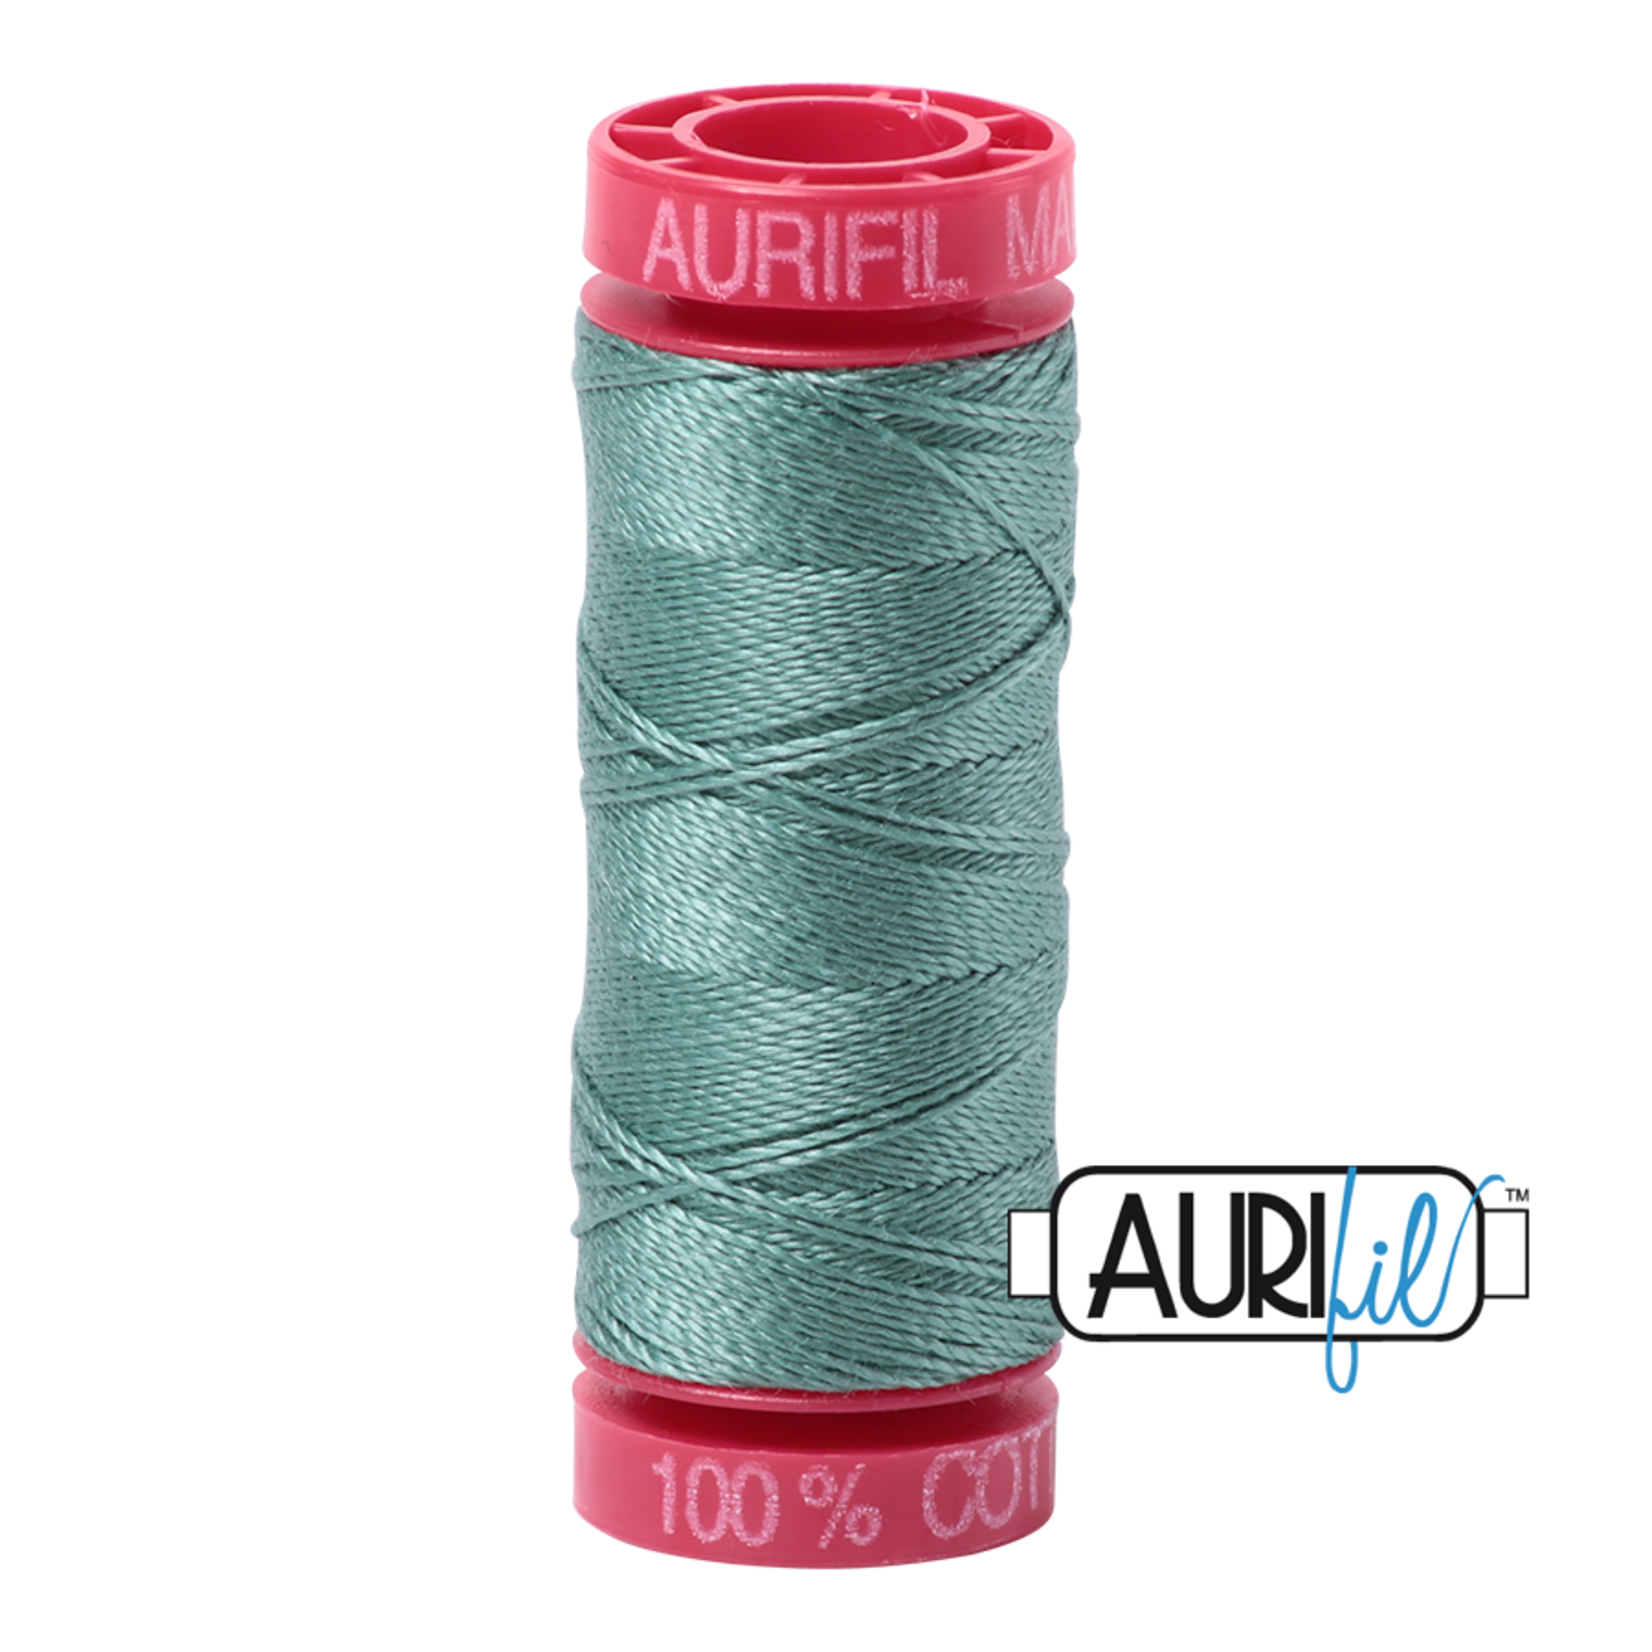 AURIFIL AURIFIL 12 WT Medium Juniper 2850 Small Spool